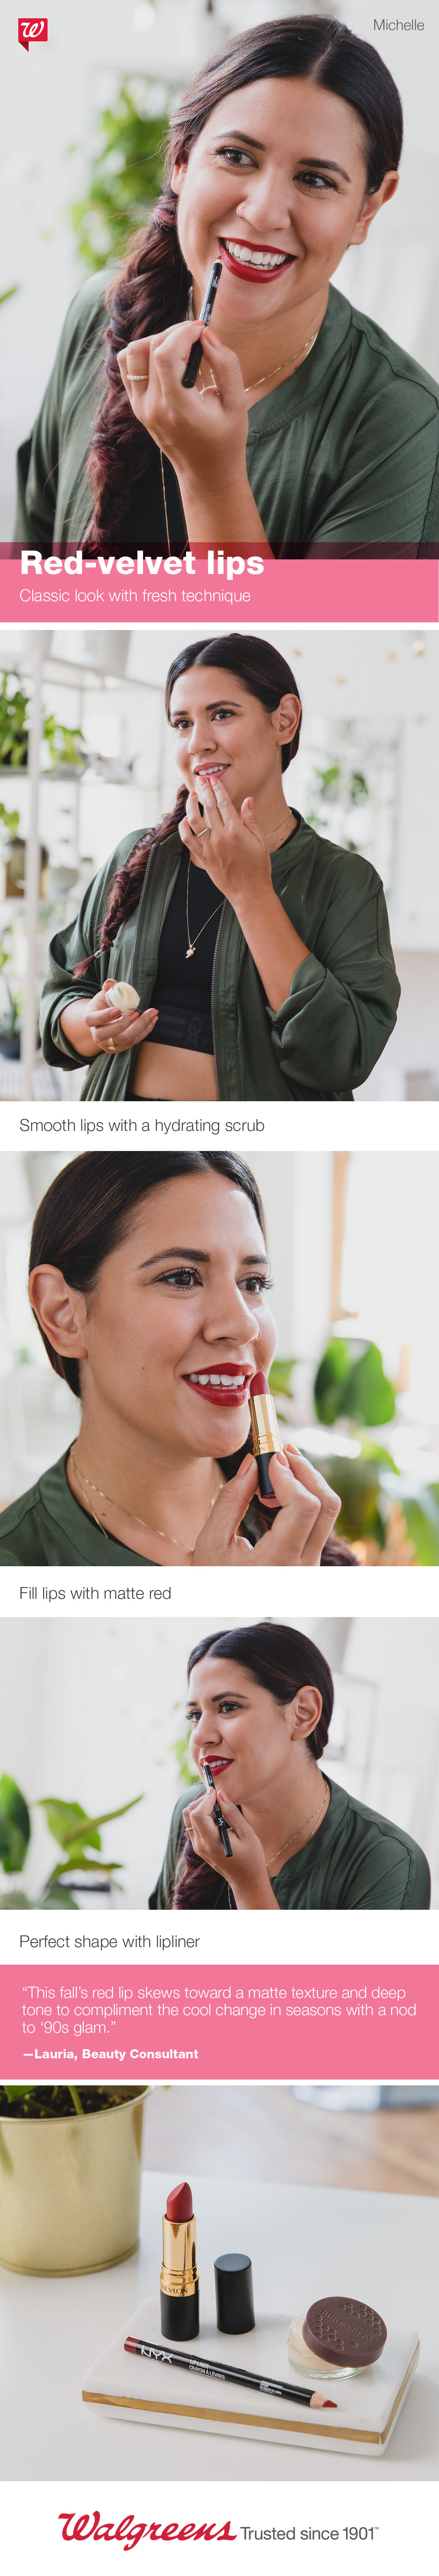 Own the look Perfect your fall pout in perfectly lined